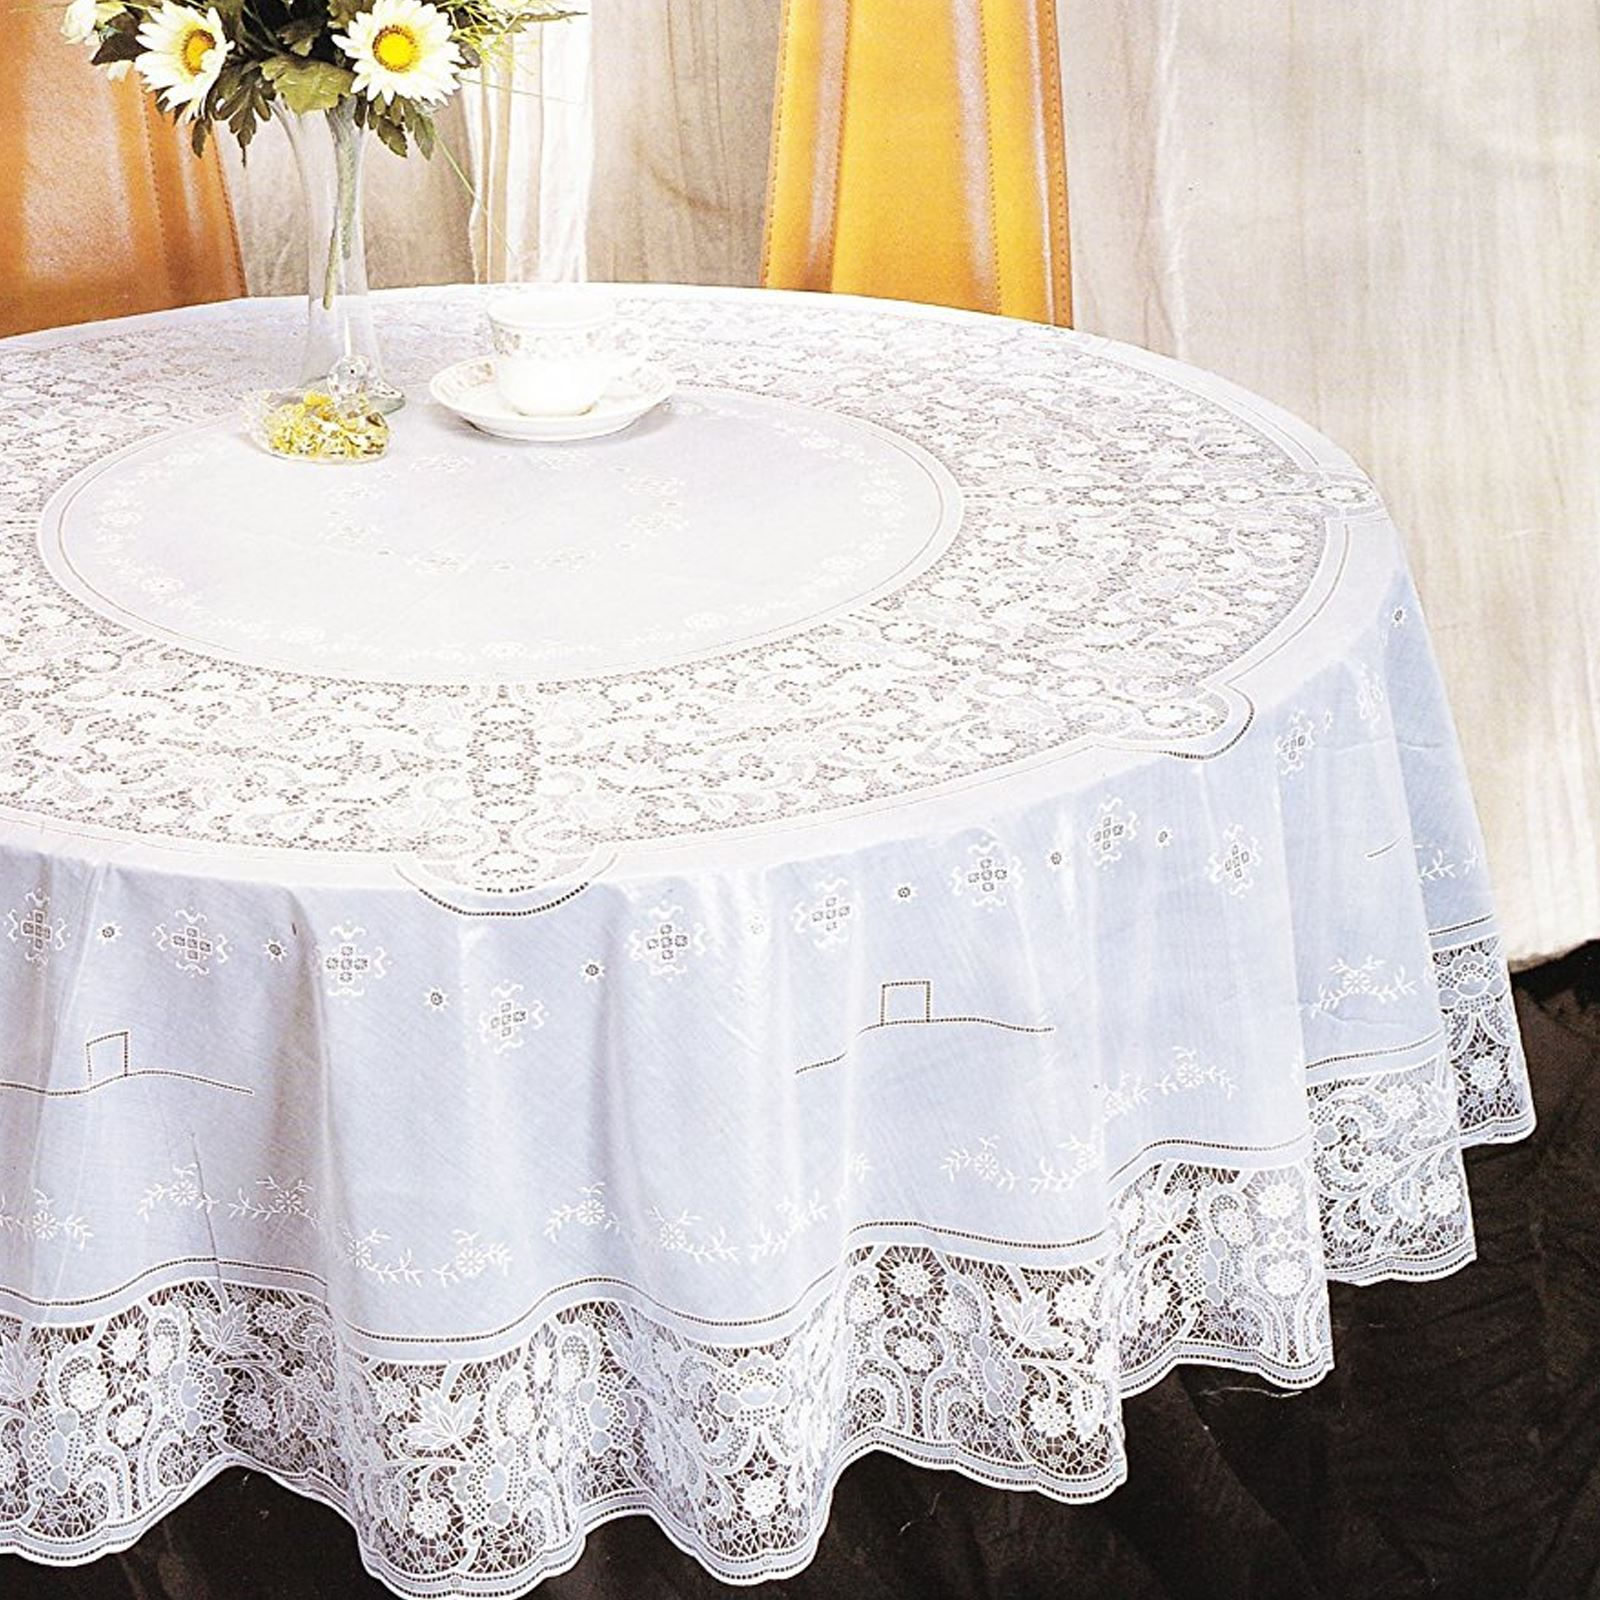 Vinyle Dentelle Nappe De Table Housse Blanc Ovale Rectangle Carré Rond en relief